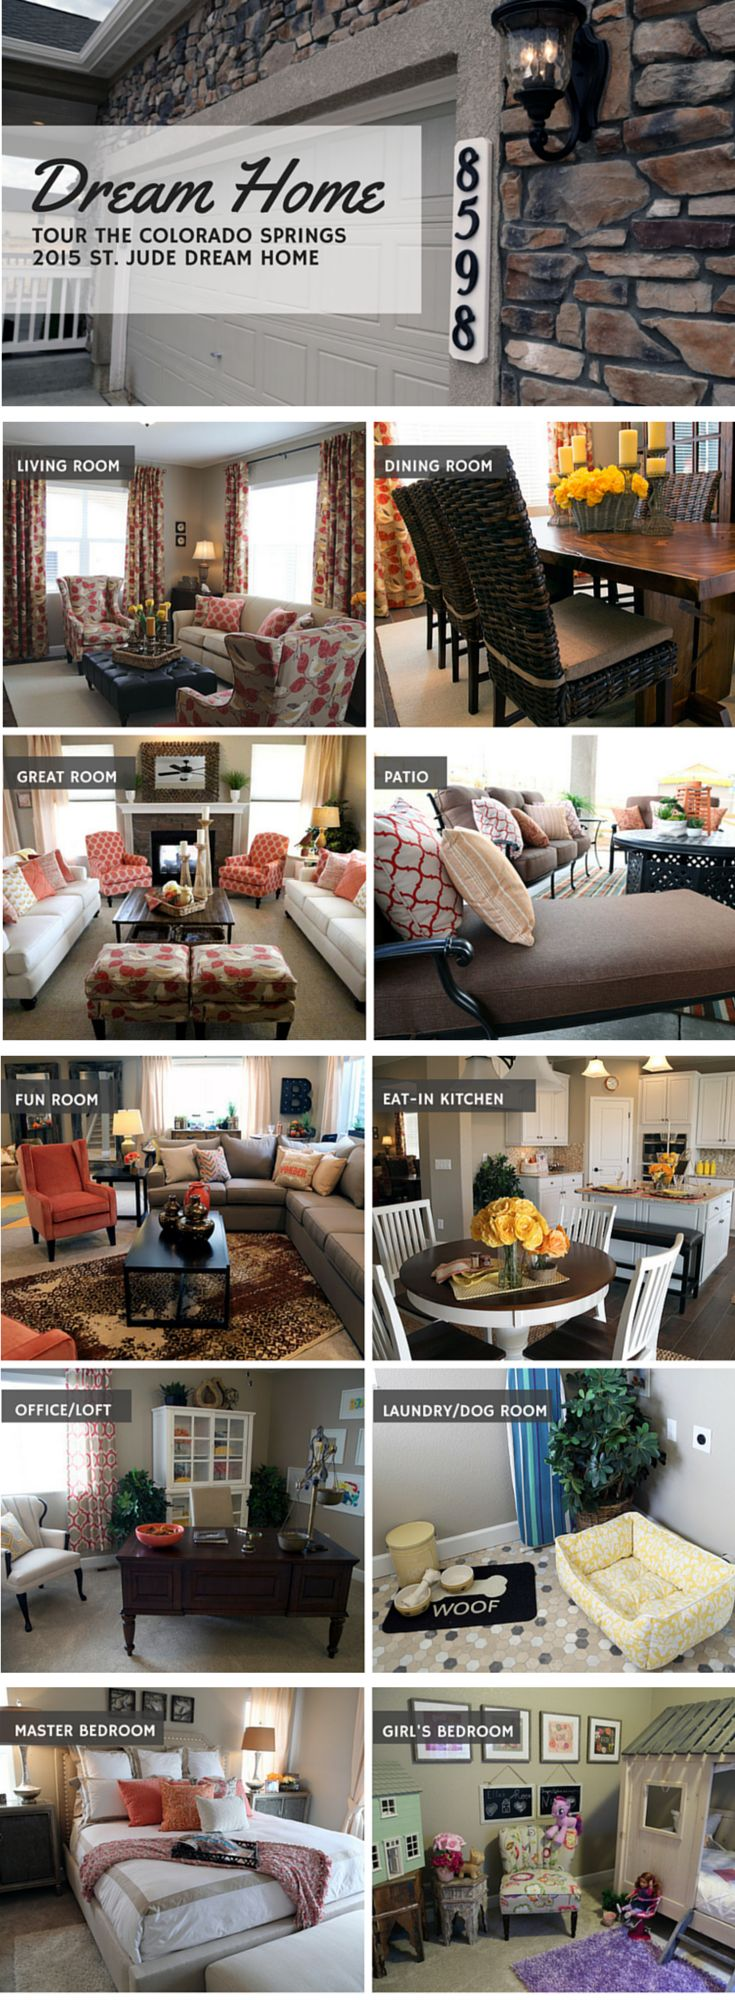 HOME TOUR: Step Inside The 2015 Colorado Springs St. Jude Dream Home  Furnished By